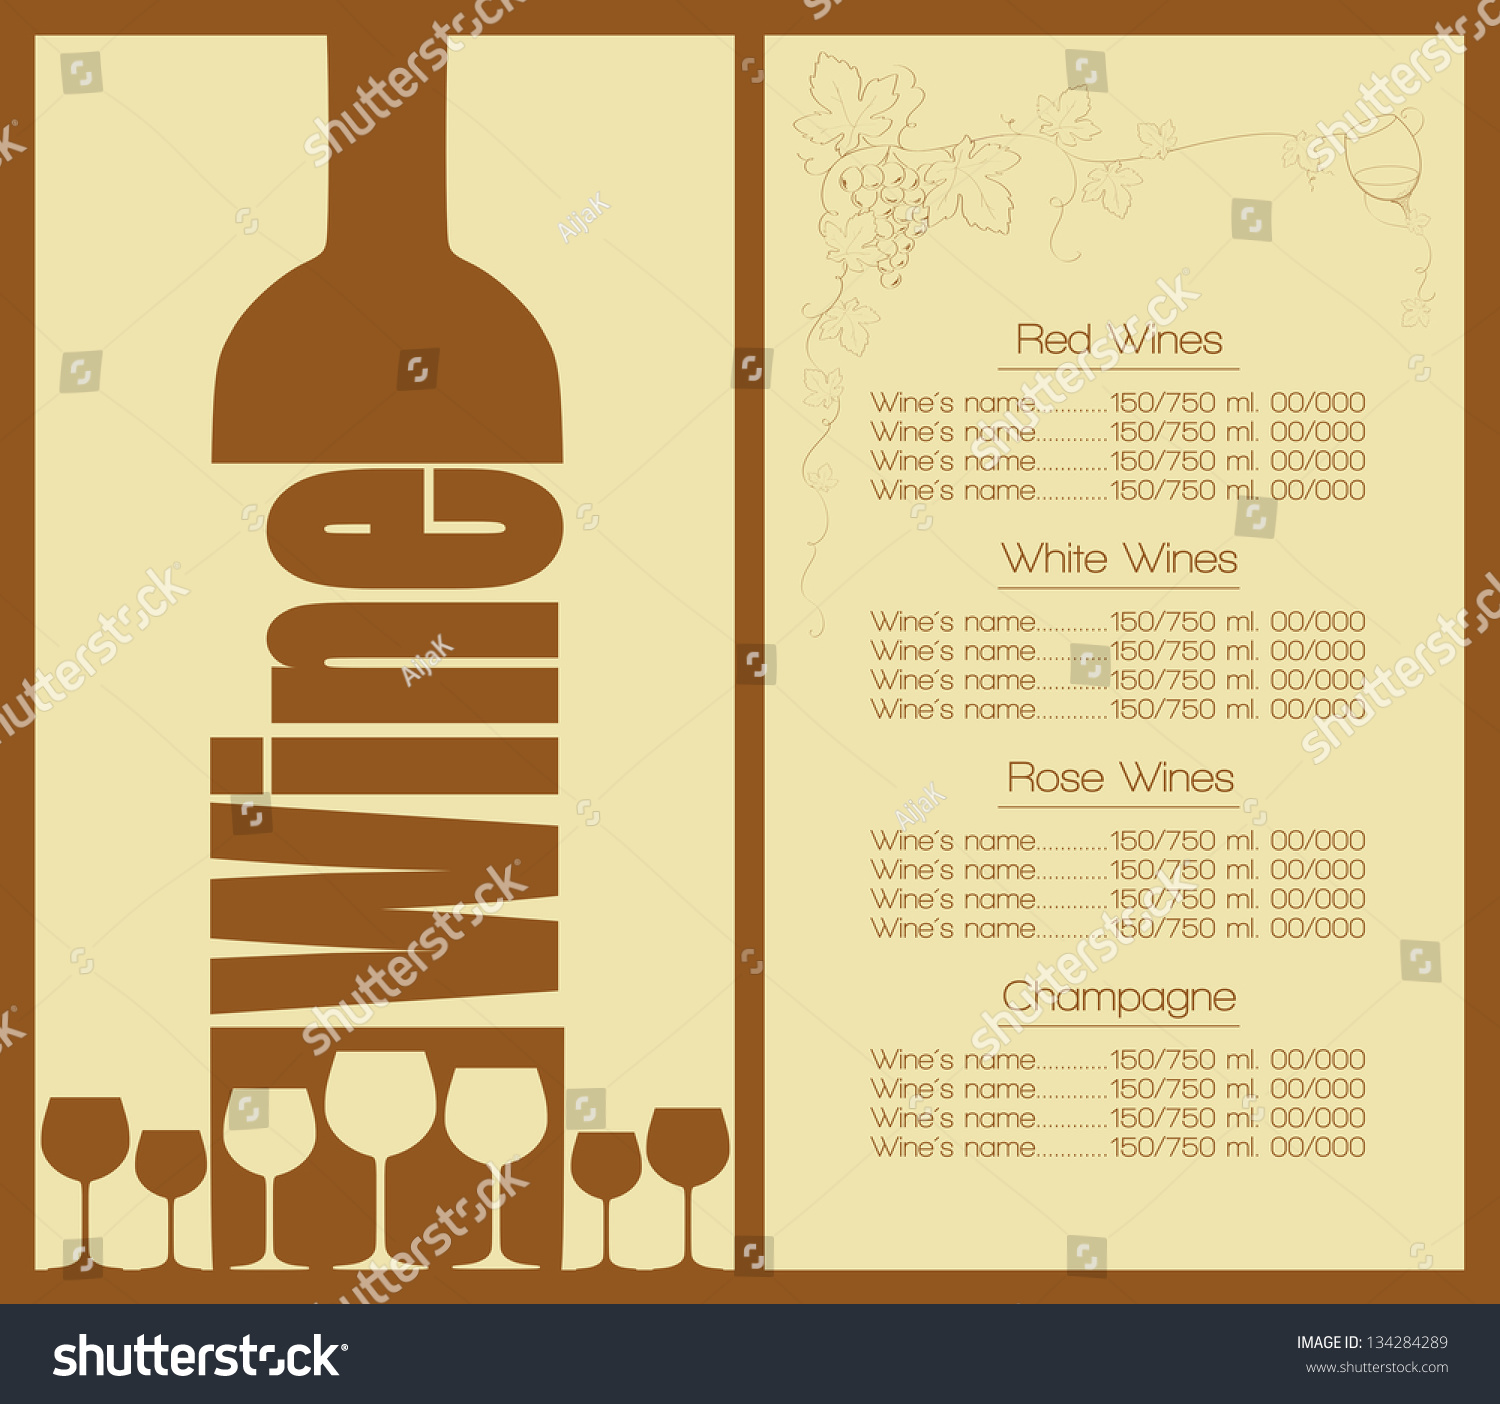 Wine list design for bar restaurant house or other